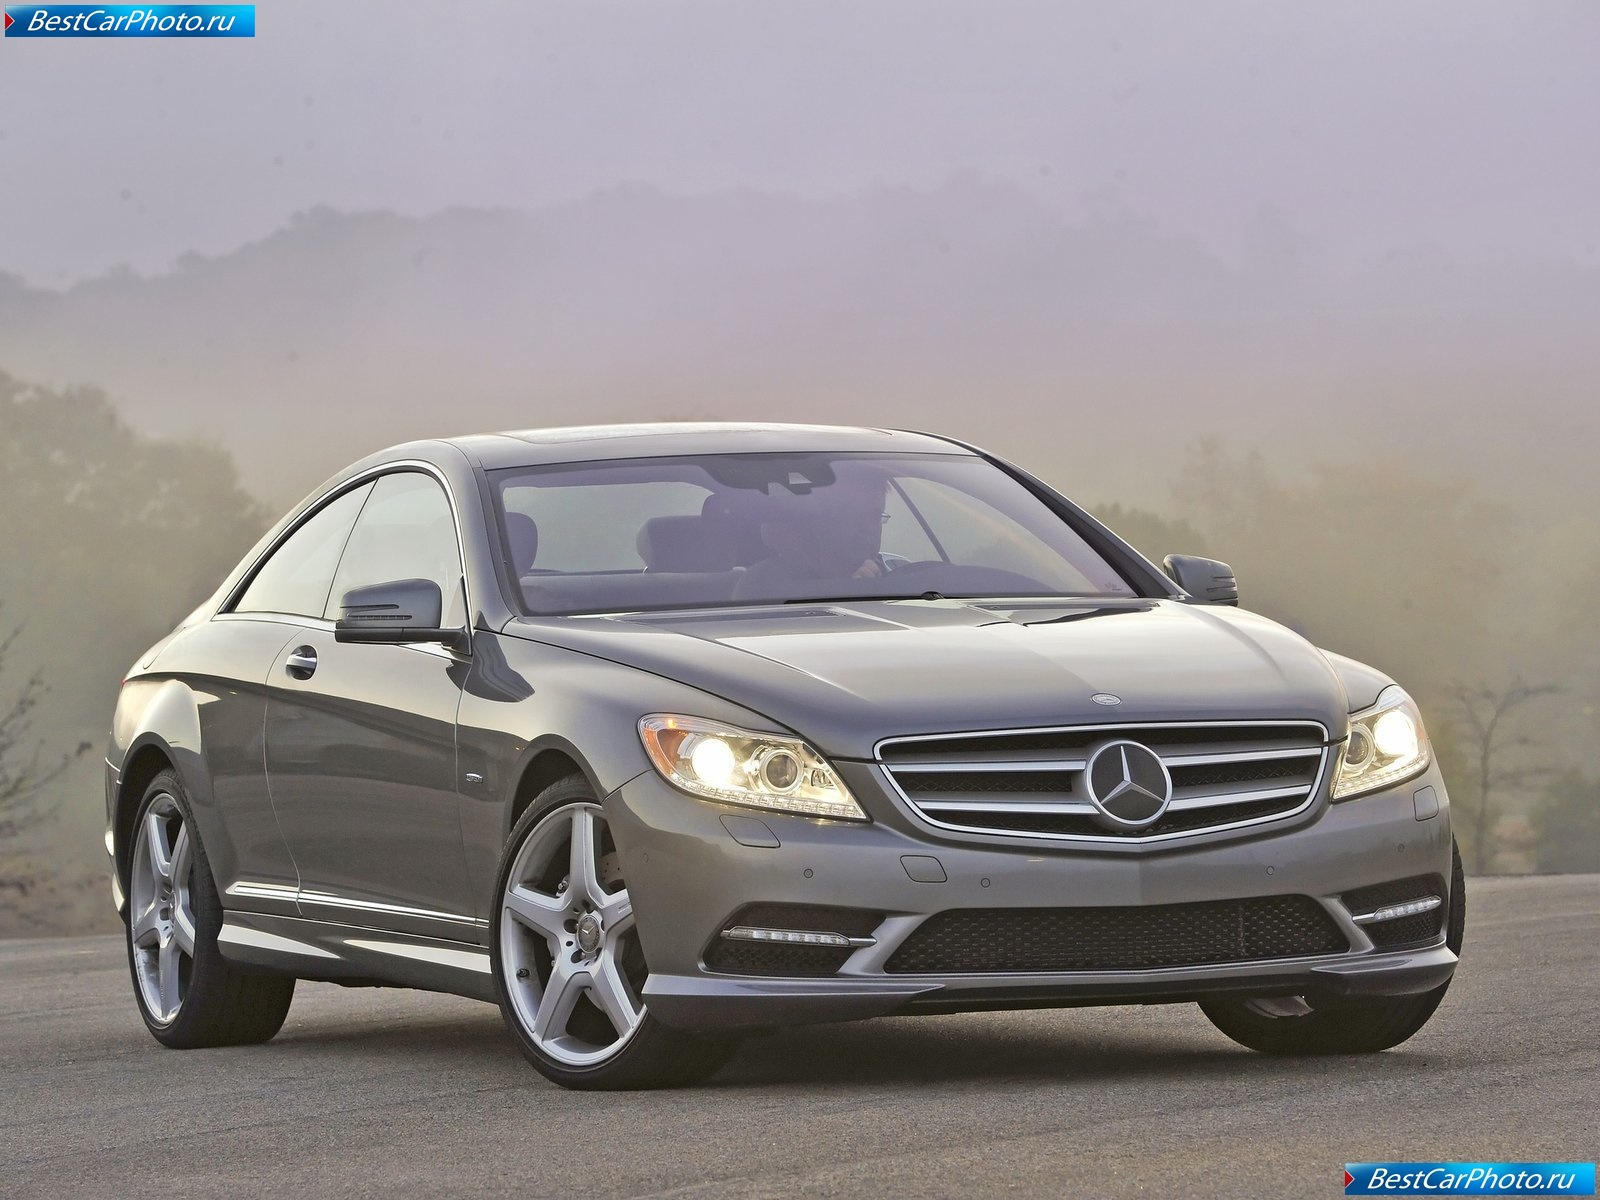 2007 Mercedes Benz CL Class AMG styling photo - 2